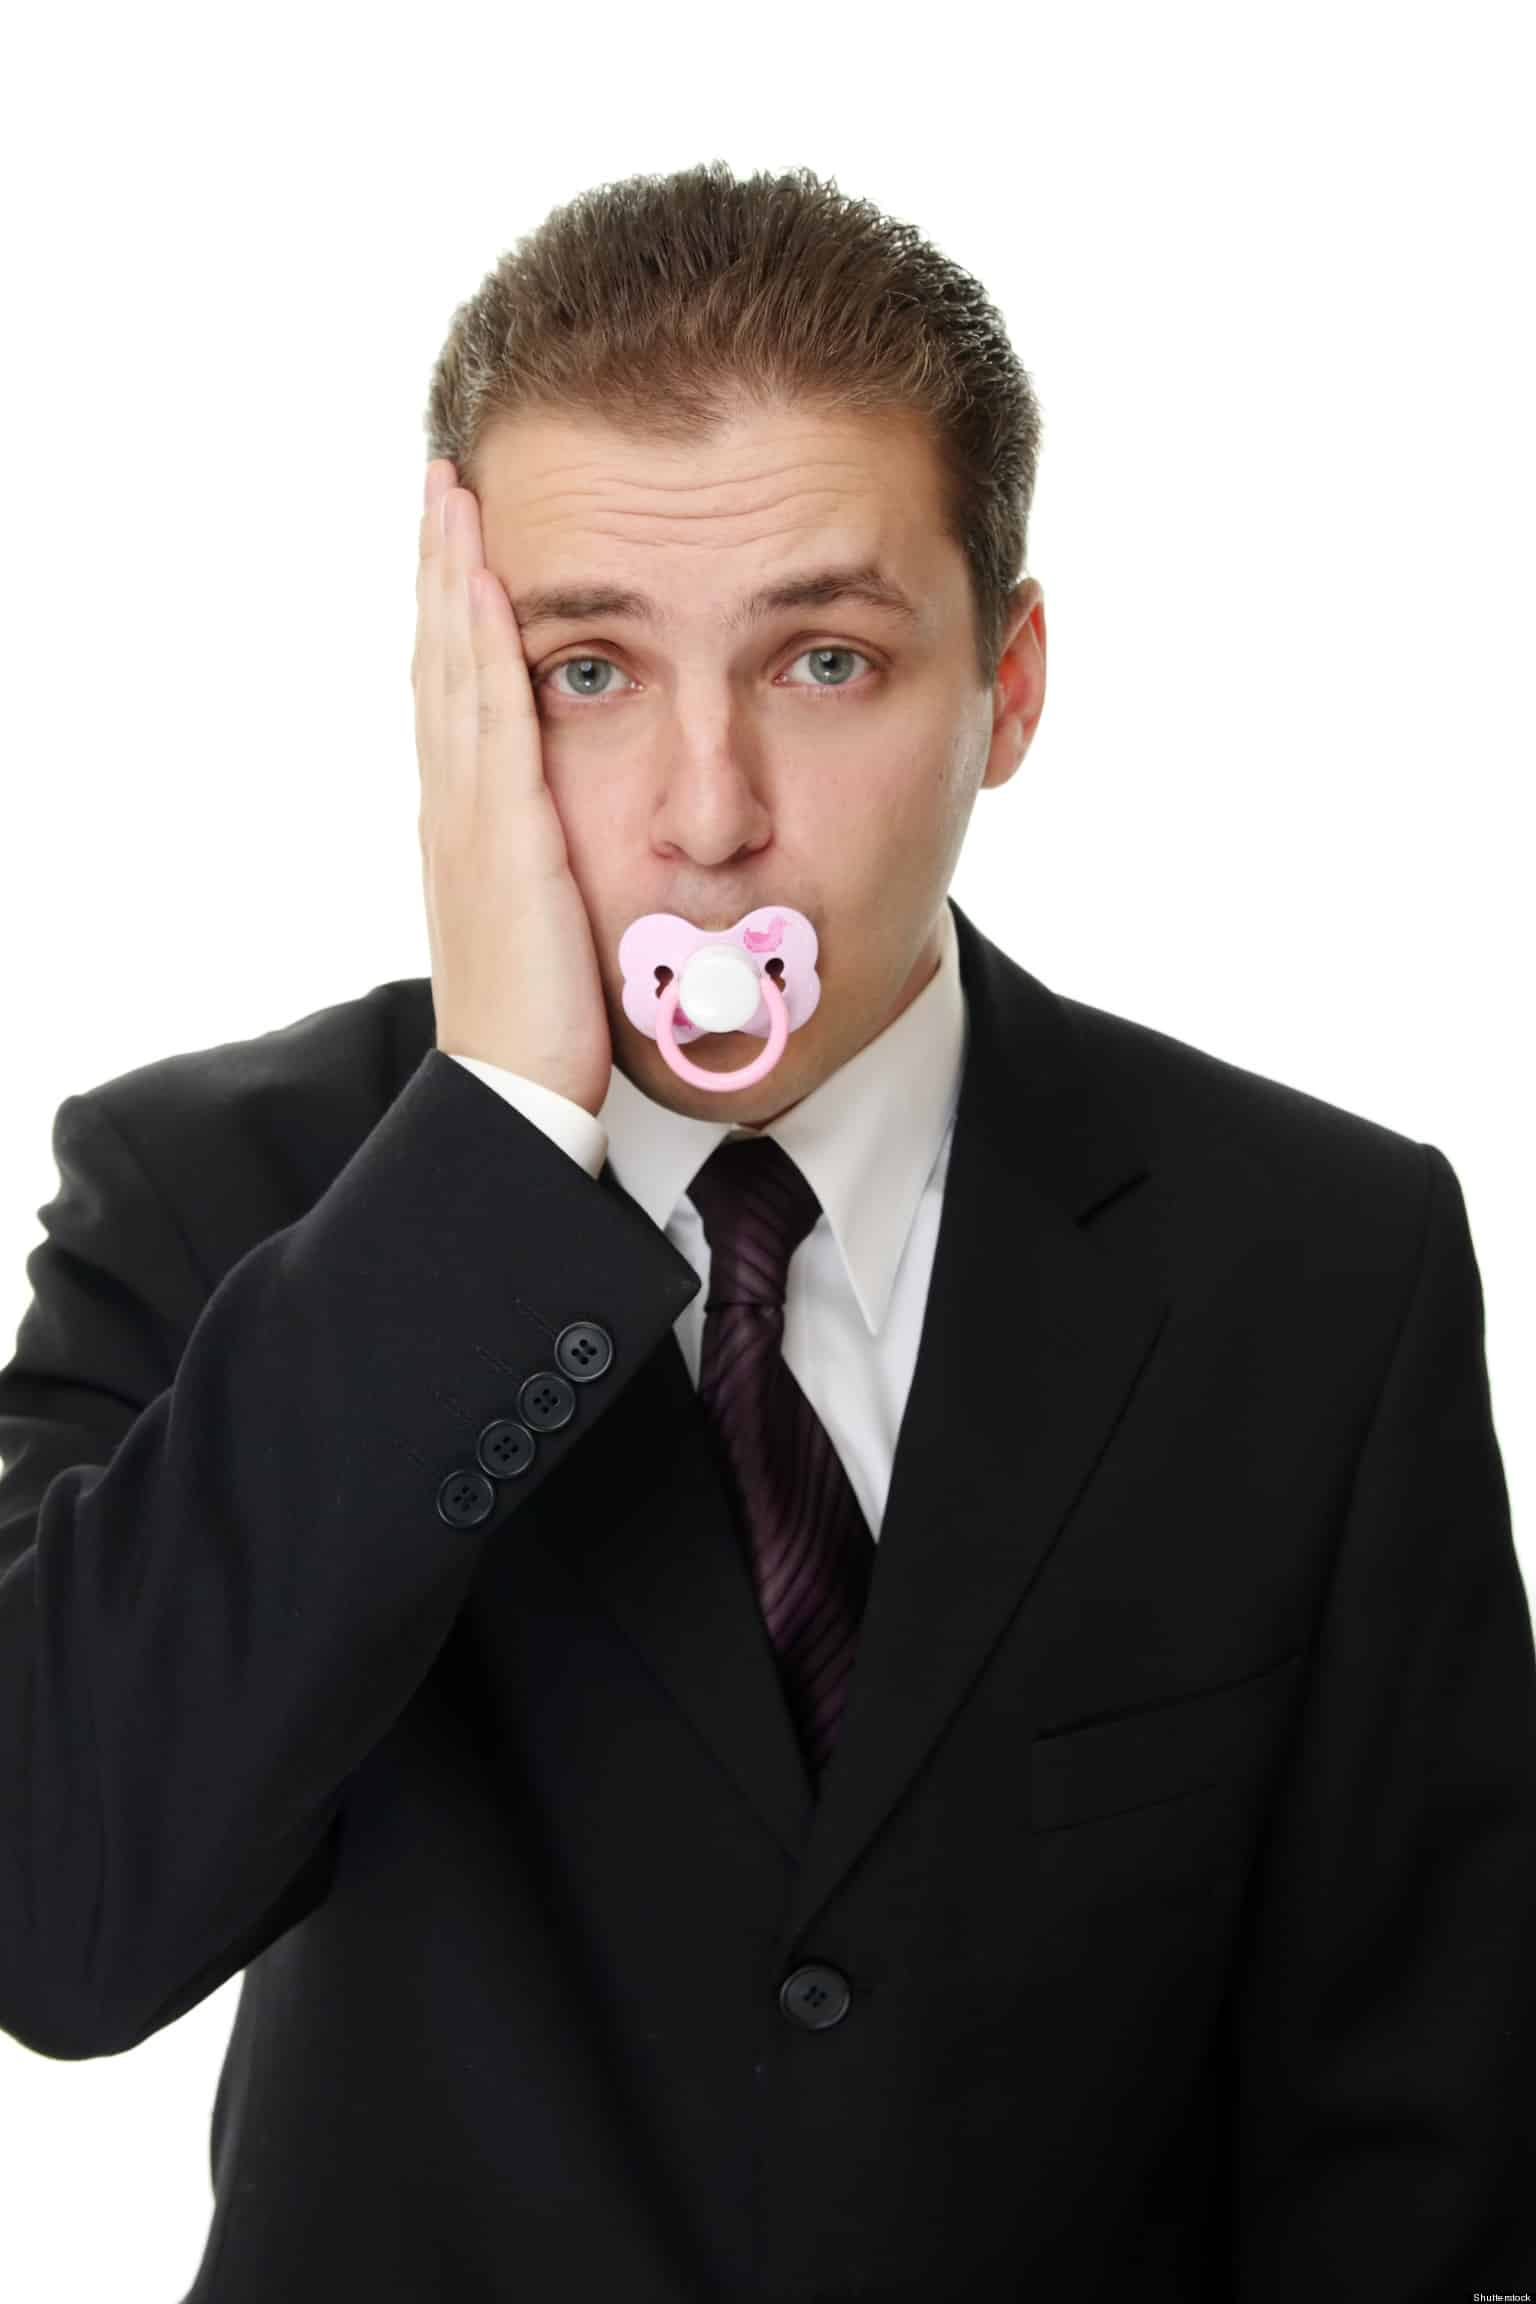 adult with paci